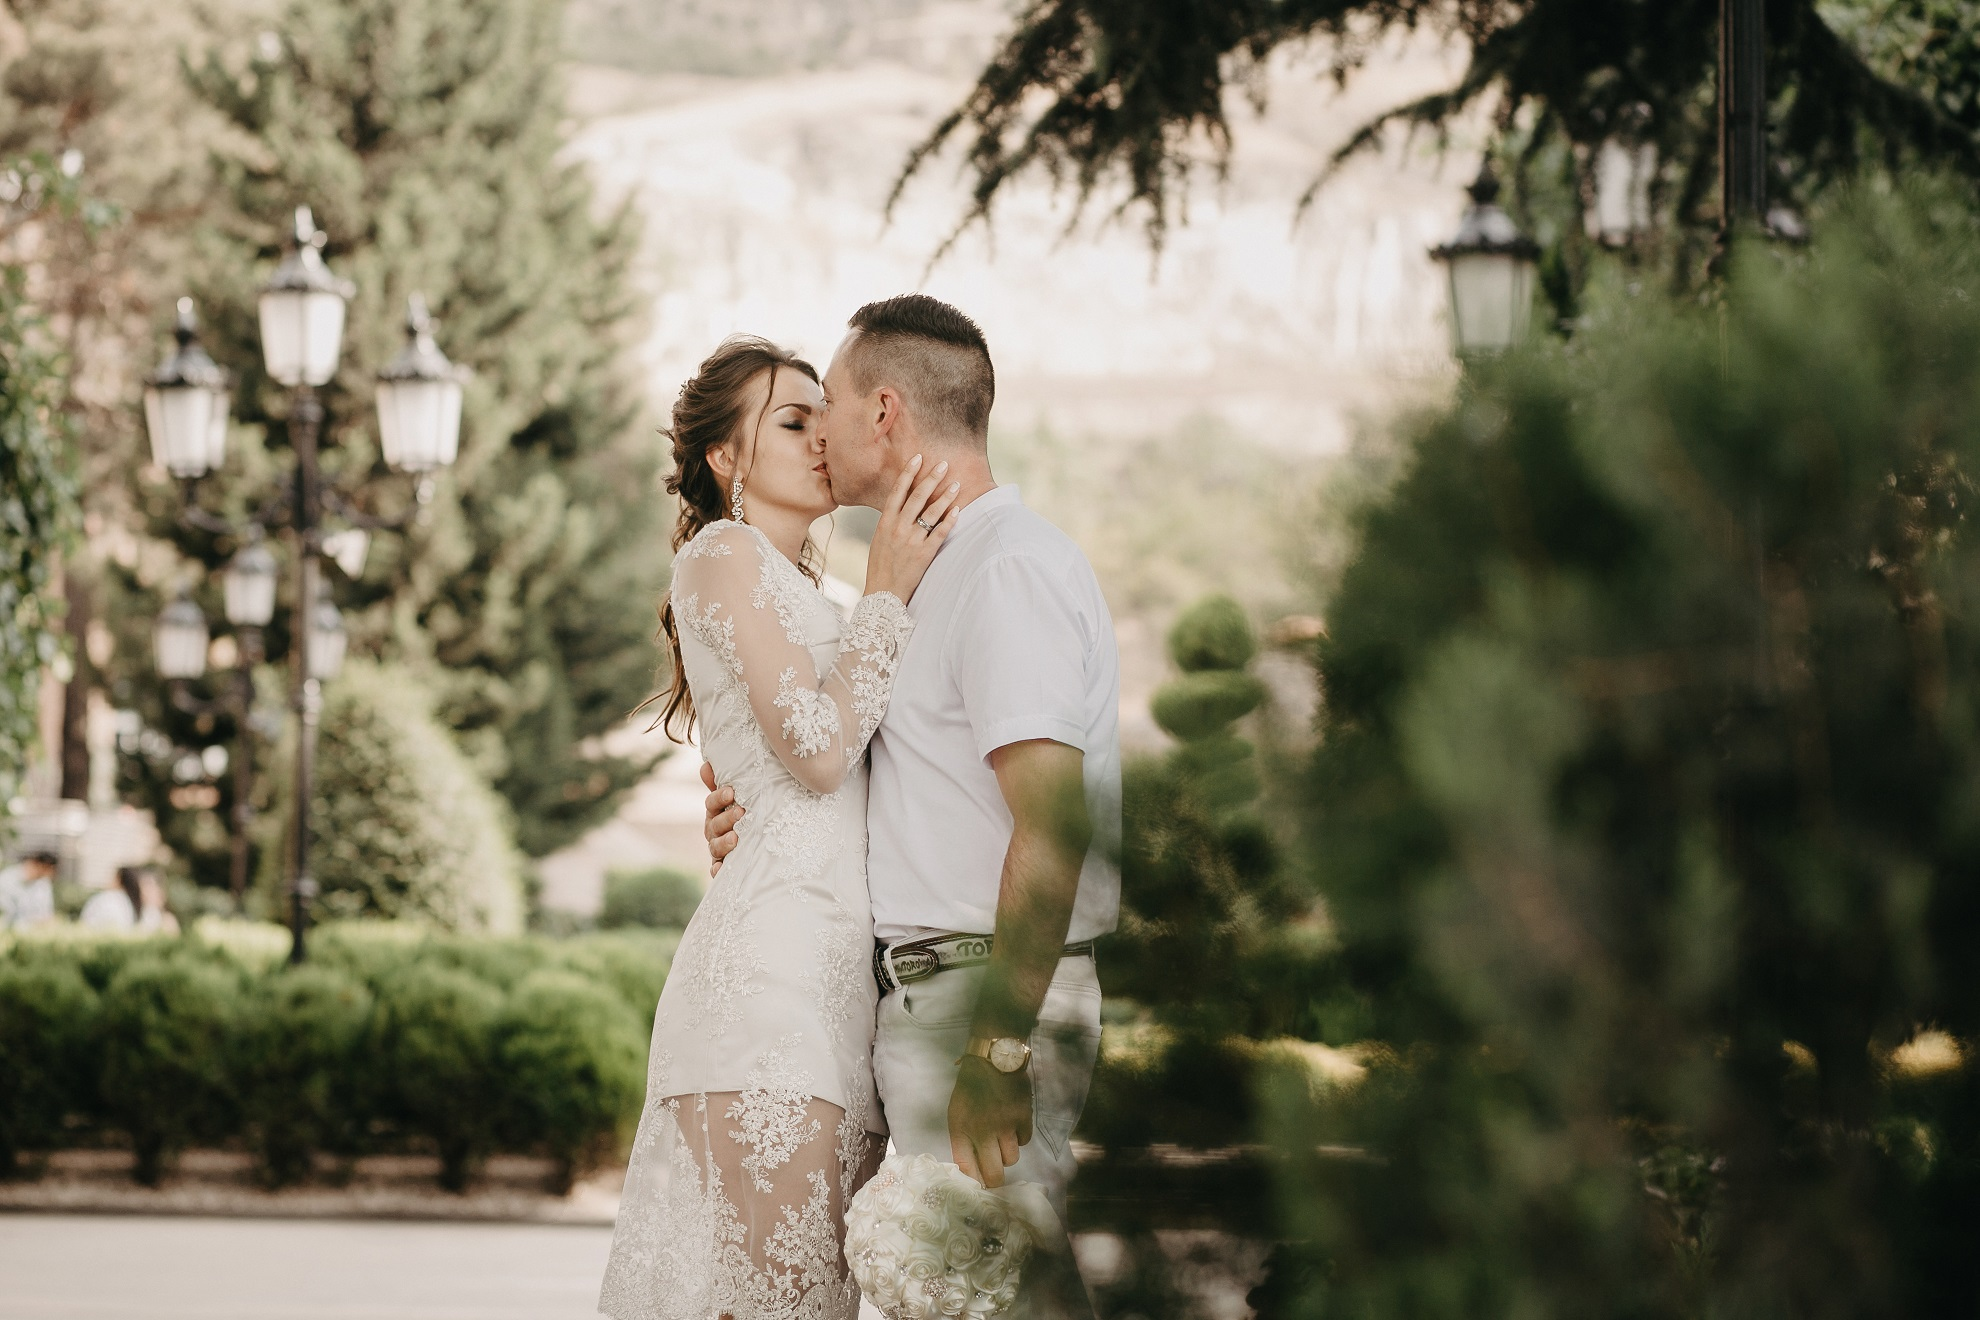 Wedding in Tbilisi